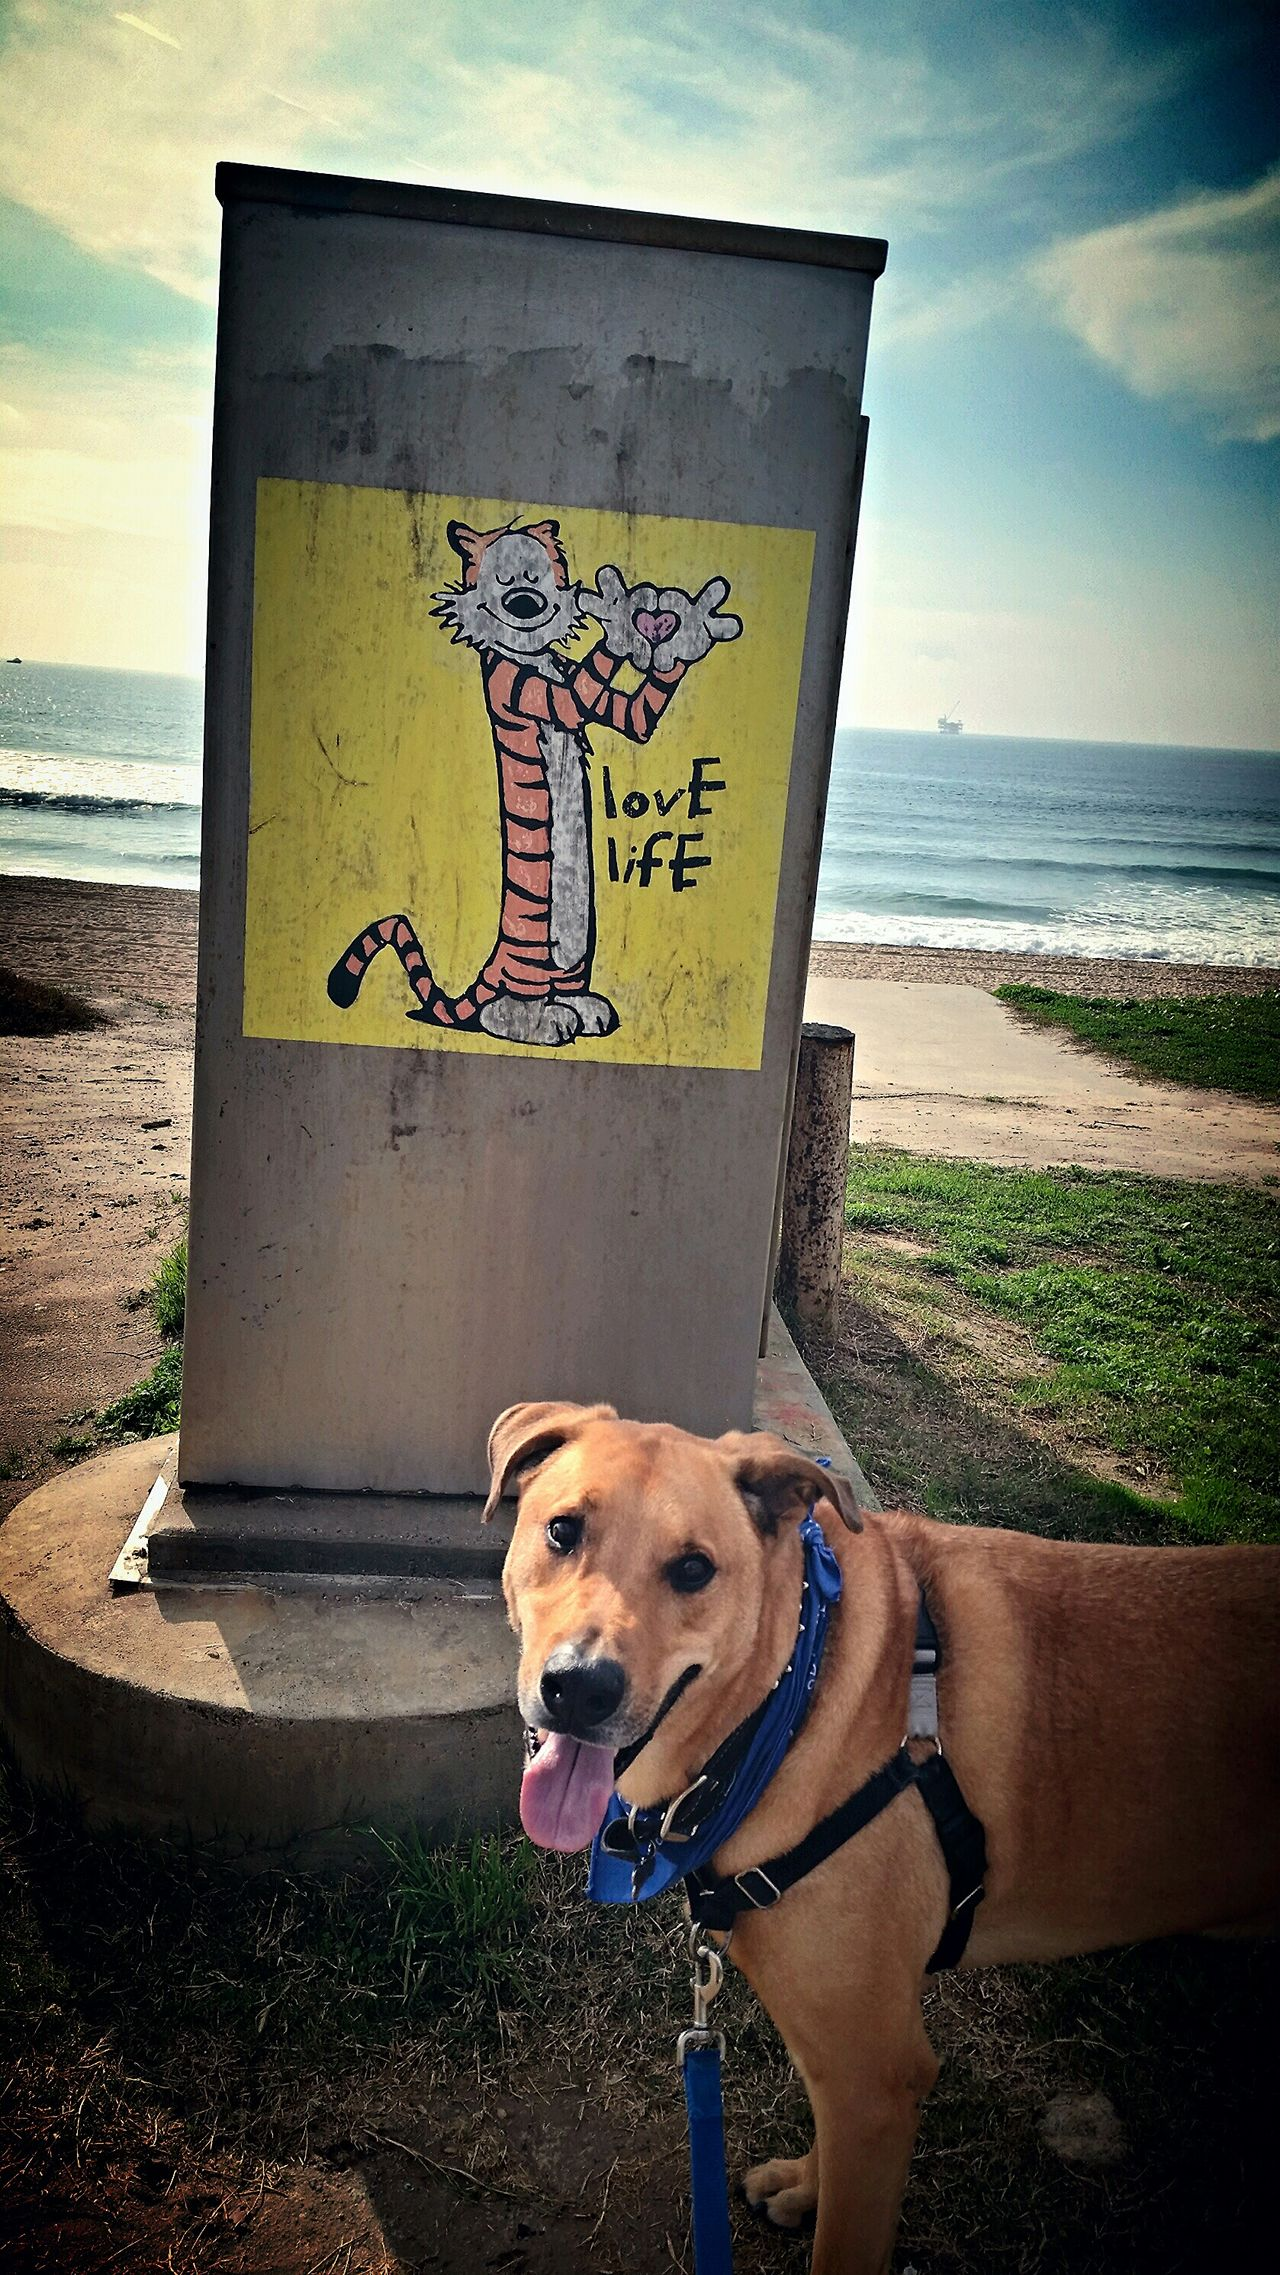 """If good thjngs lasted forever, would we appreciate how precious they are?"" ~Hobbes Truth Hobbes Calvin And Hobbes Love Life Surf City USA Xephyr Cheesebro McIlrath"